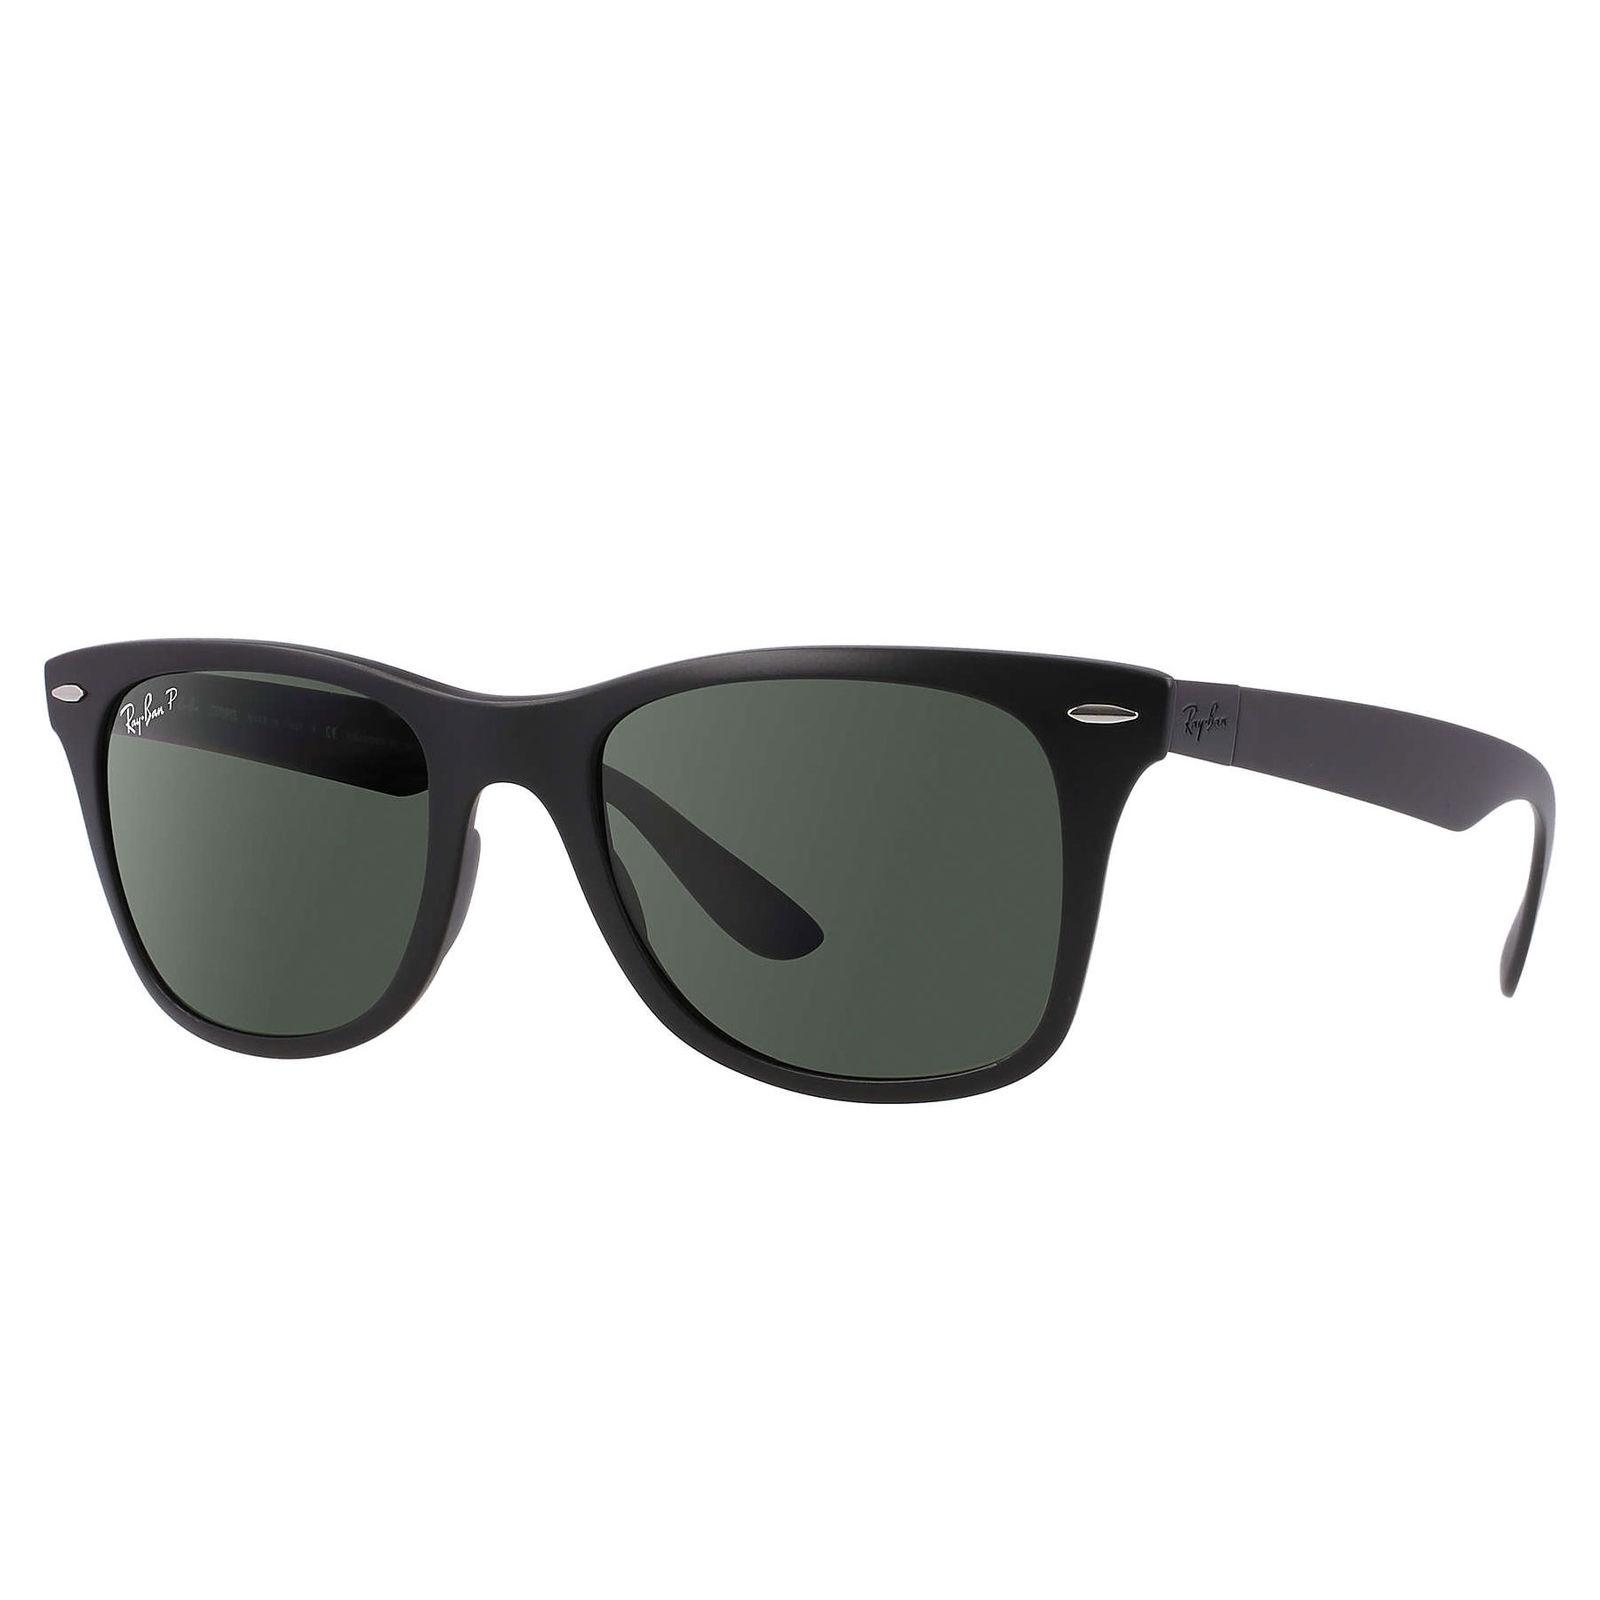 5e60c52e56 ... discount code for ray ban ray ban wayfarer litefoce polarized sunglasses  black green rb4195 78e09 e9456